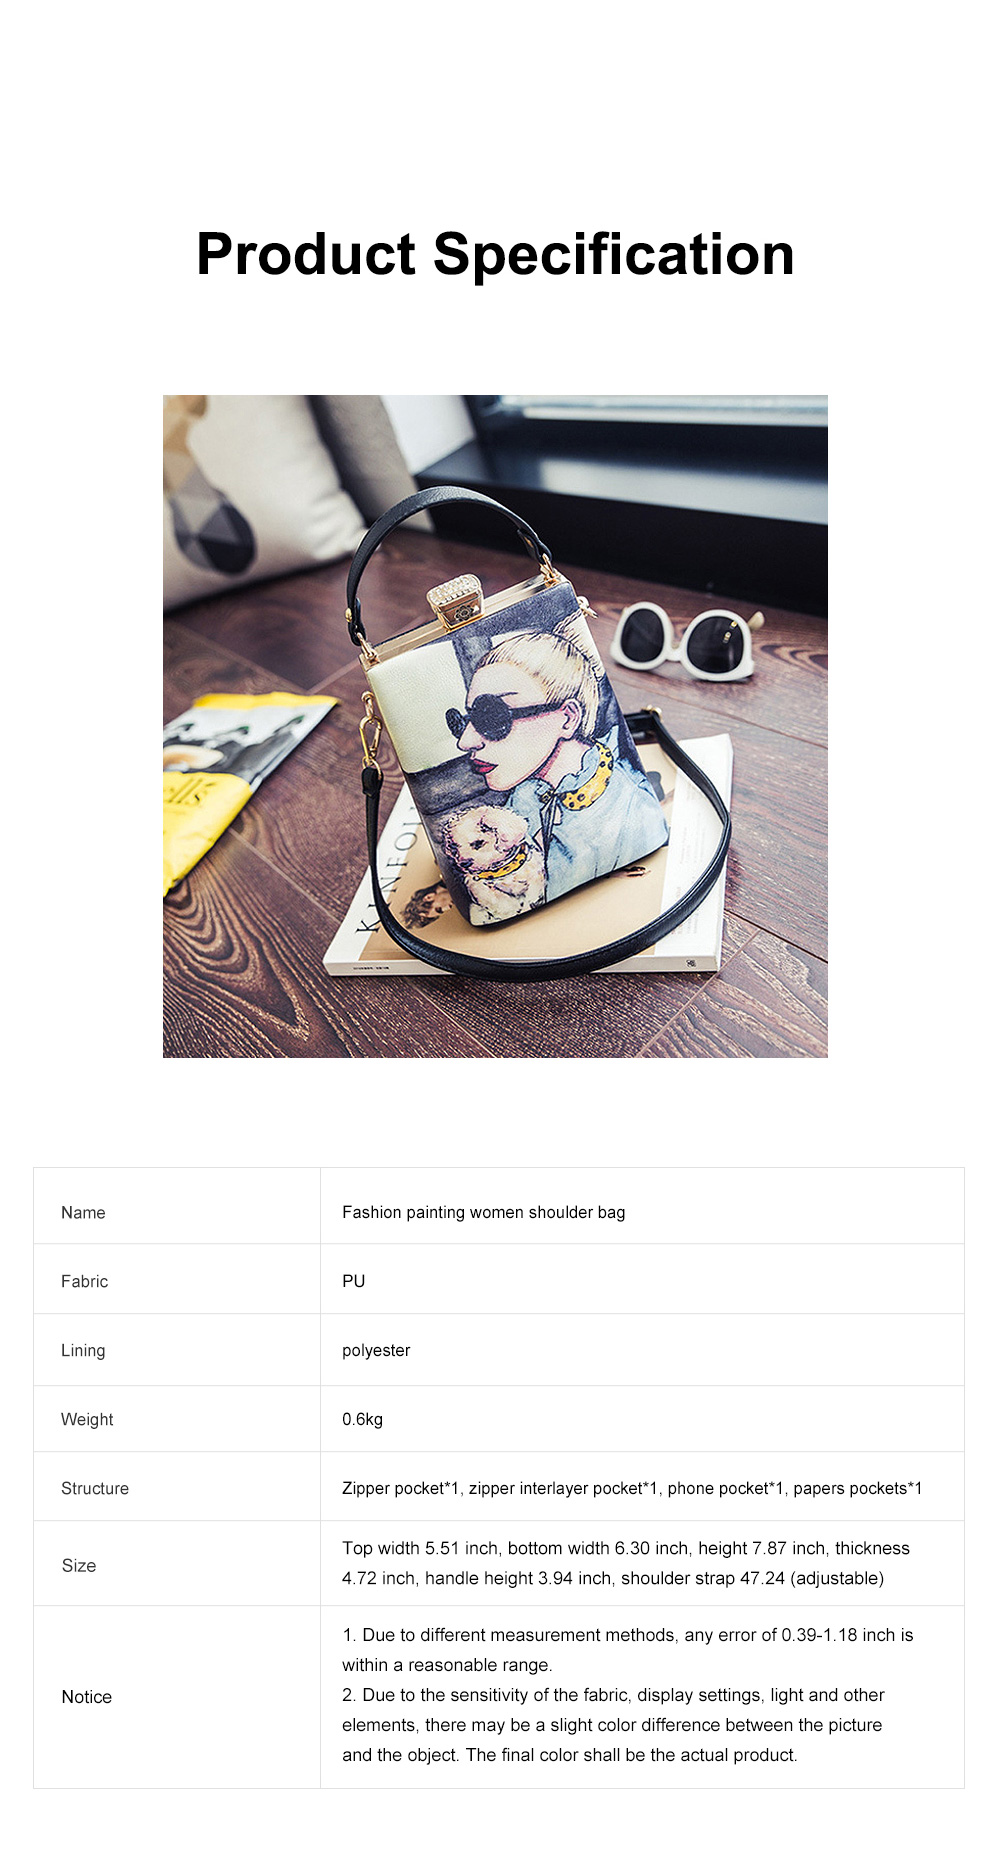 Fashion Painting Small Women Shoulder Bag with Comfortable Handle, Quality Smooth PU Leather Lady Bag 7